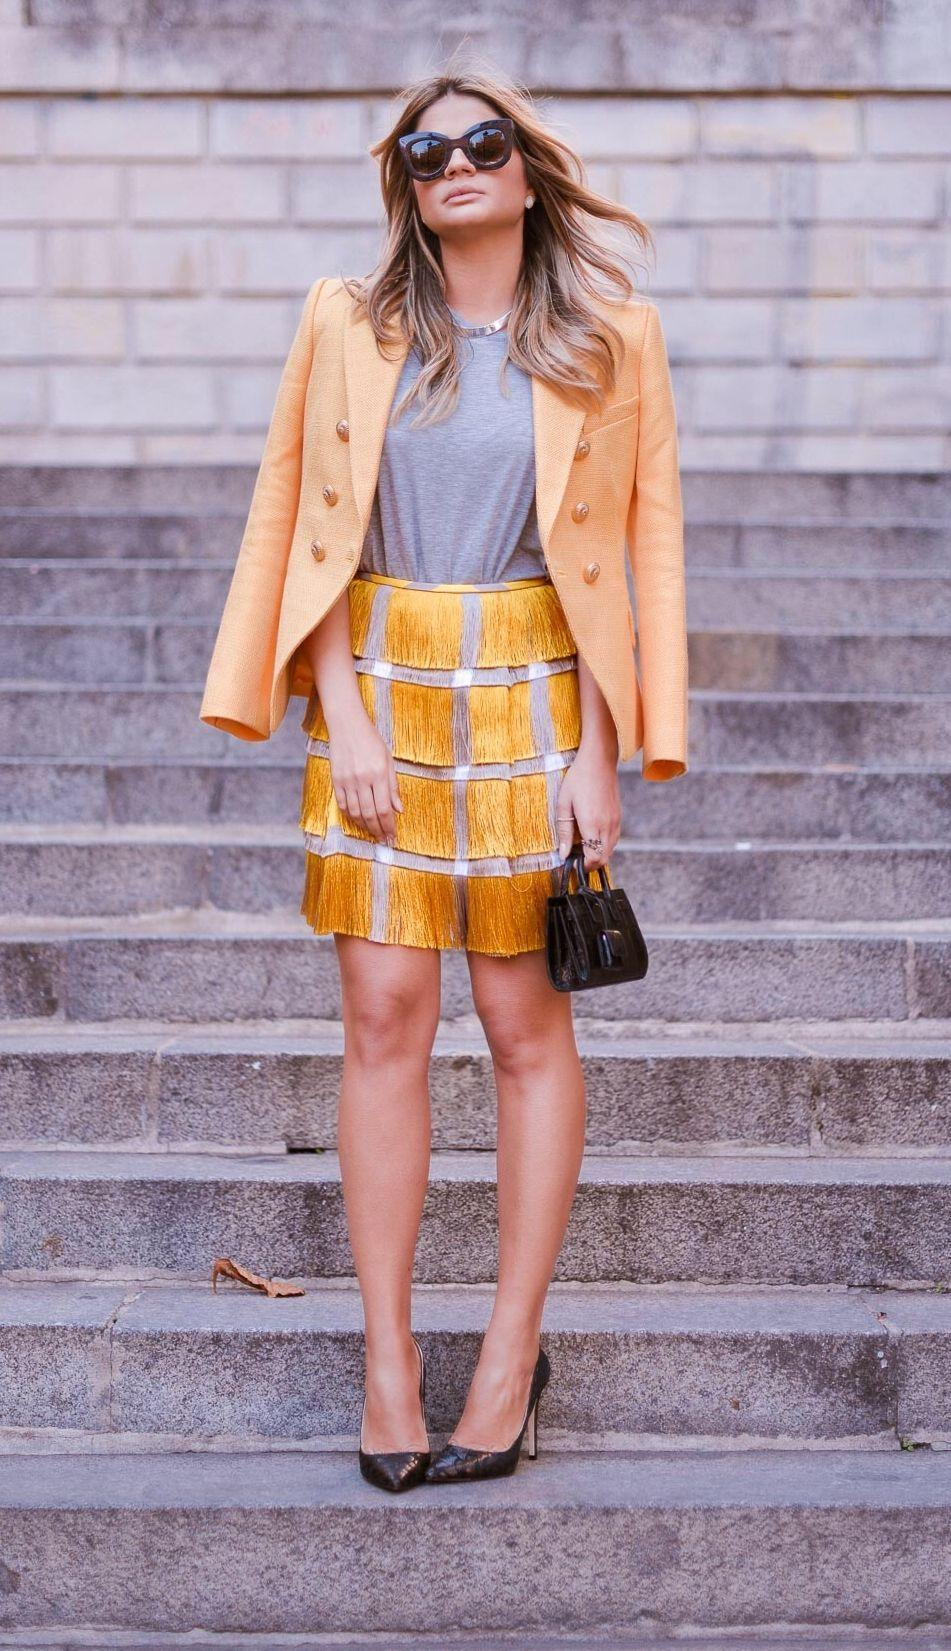 "Foto: Reprodução / <a href=""http://www.blogdathassia.com.br/br/2015/10/01/thassiaemparis-about-yellow-look/#post"" target=""_blank"">Blog da Thássia</a>"